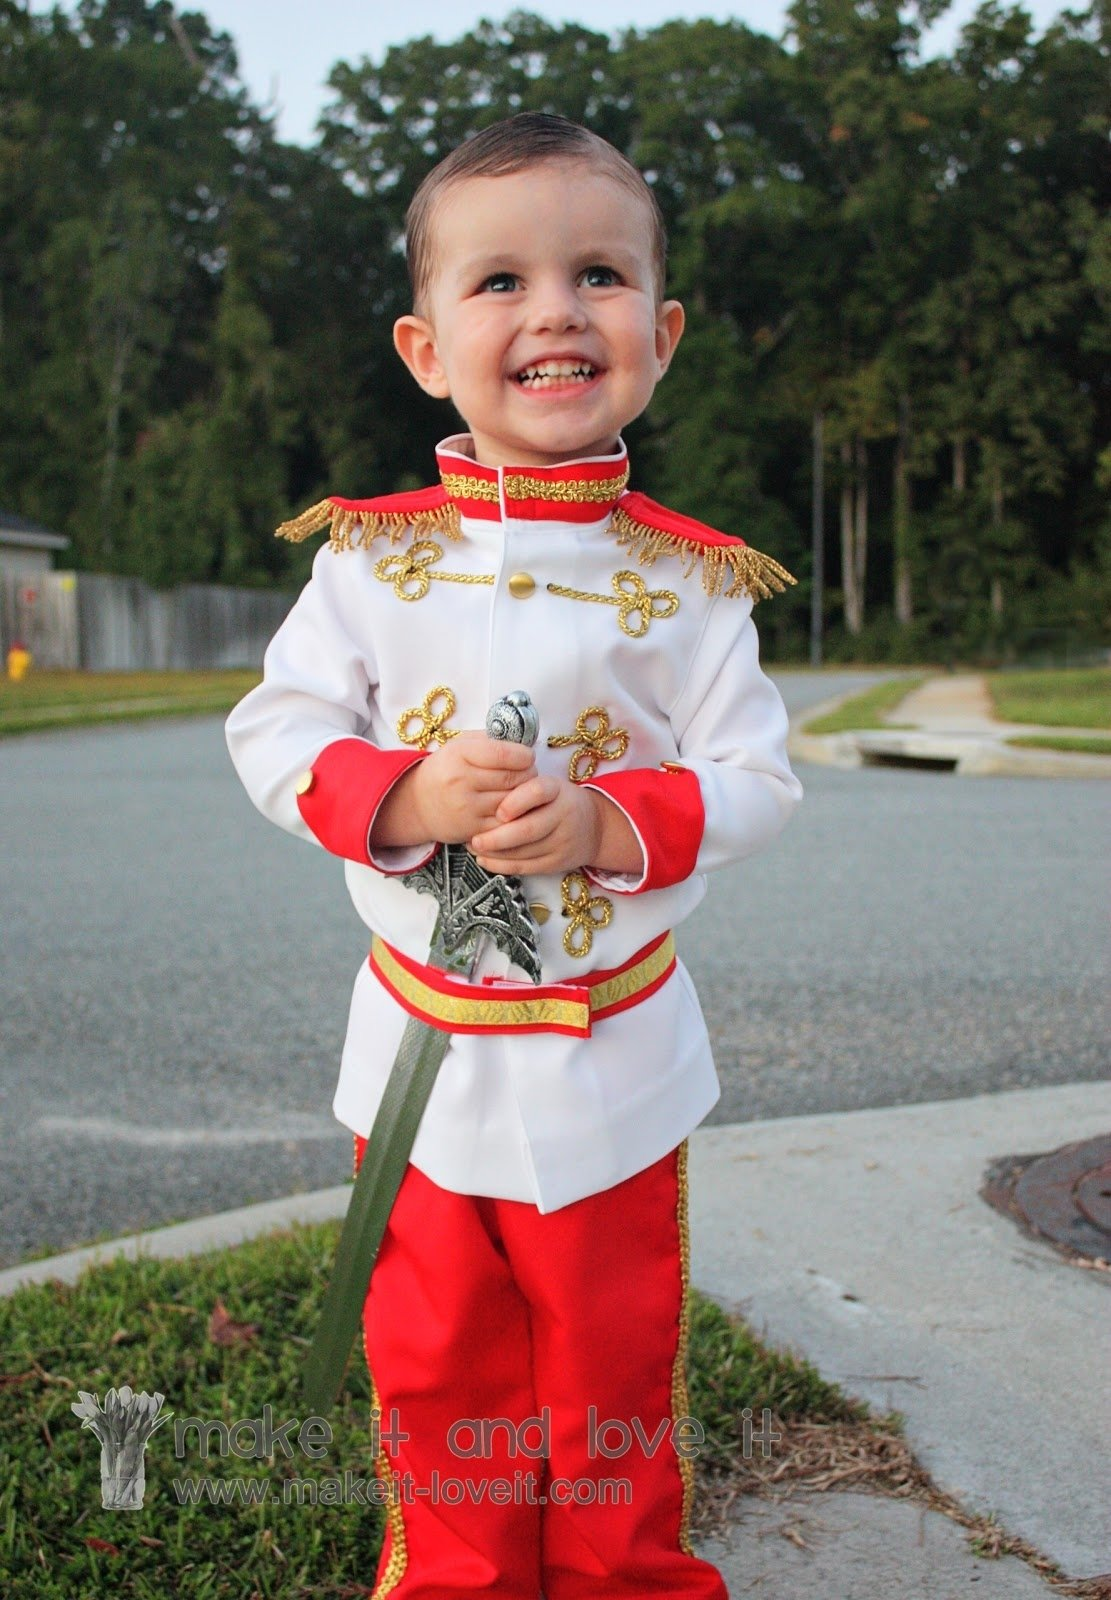 10 famous halloween costume ideas for toddler boys 50 easy diy halloween costumes for kids 1